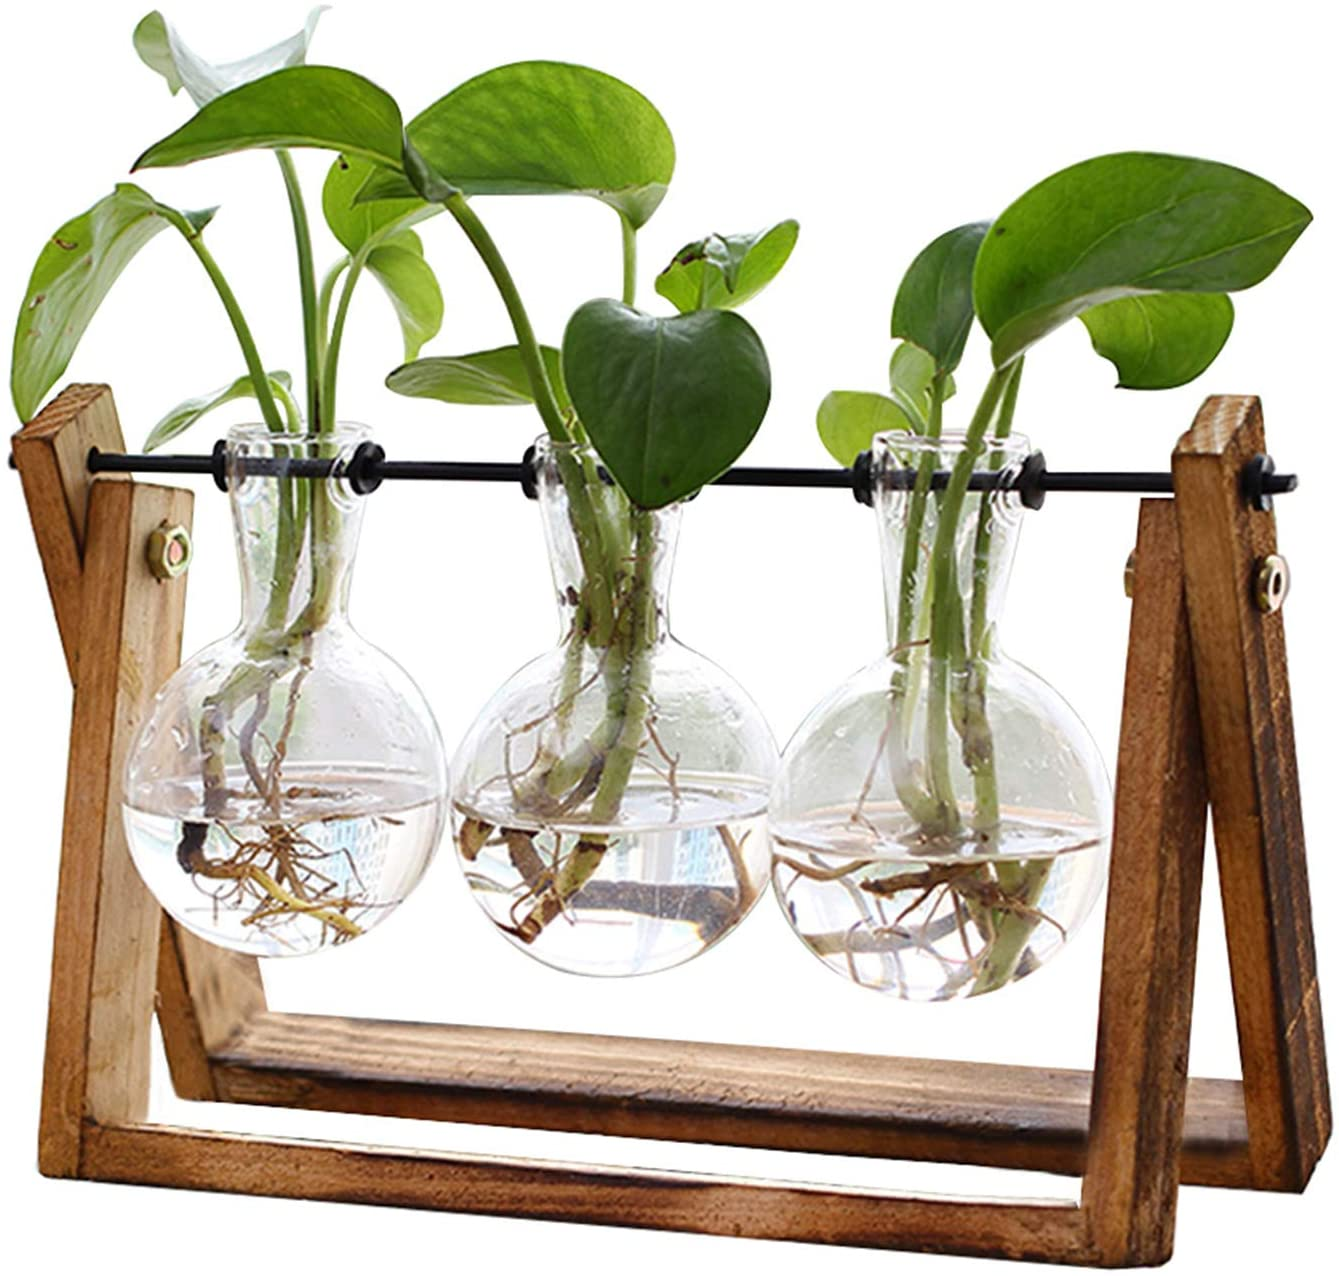 XXXFLOWER Plant Terrarium with Wooden Stand, Air Planter Bulb Glass Vase Metal Swivel Holder Retro Tabletop for Hydroponics Home Garden Office Decoration - 3 Bulb Vase: Pet Supplies